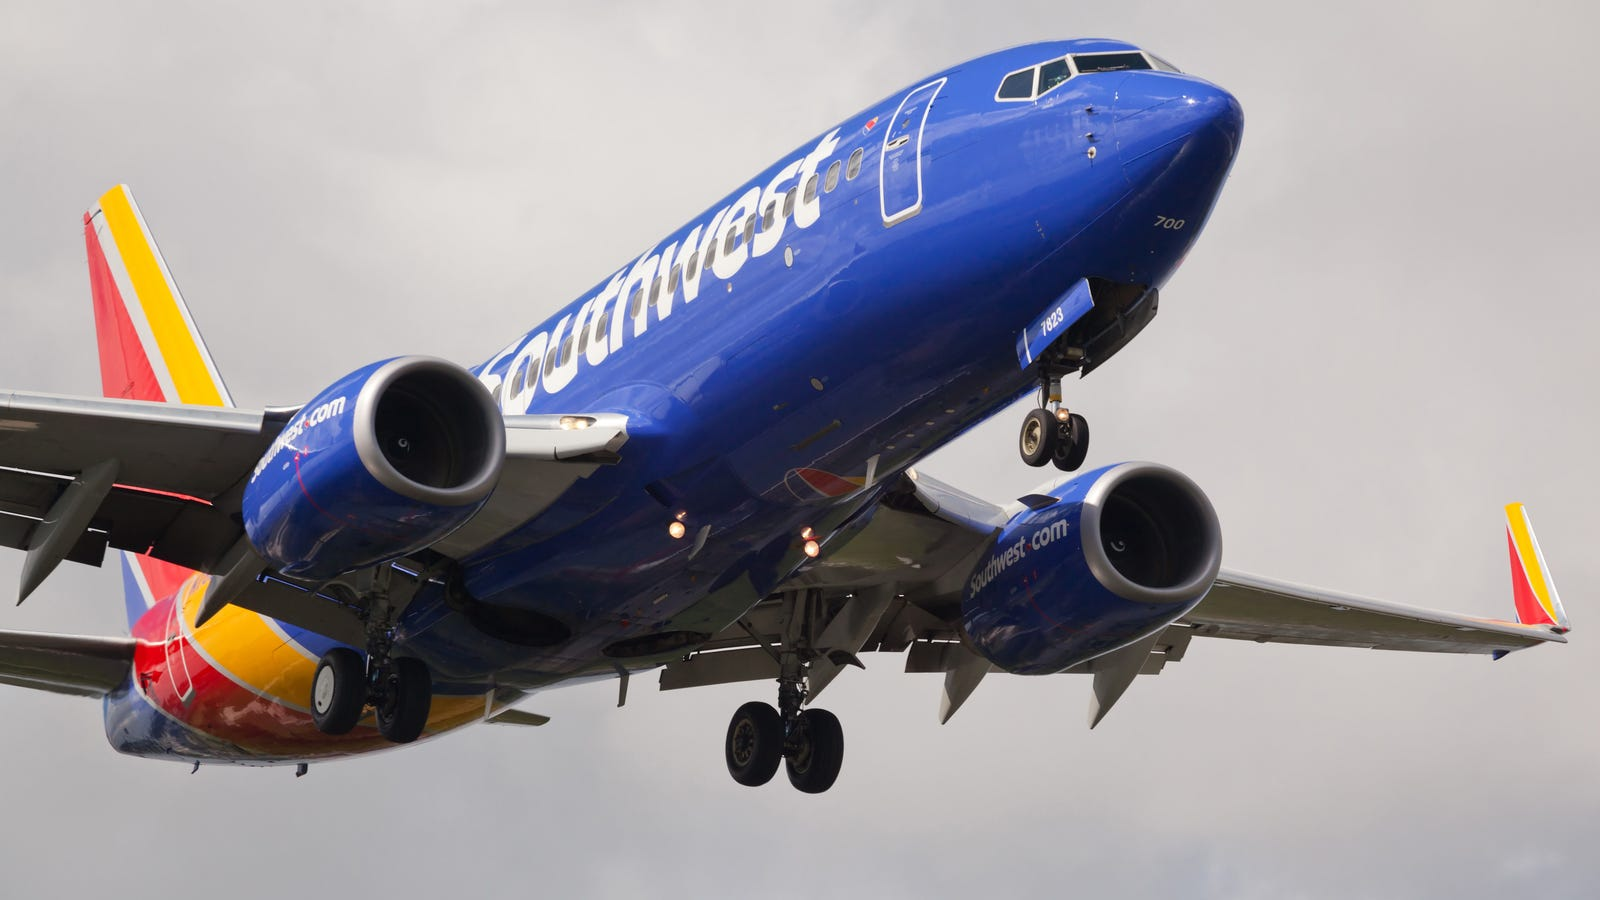 Get One-Way Southwest Tickets Starting at $49 Right Now